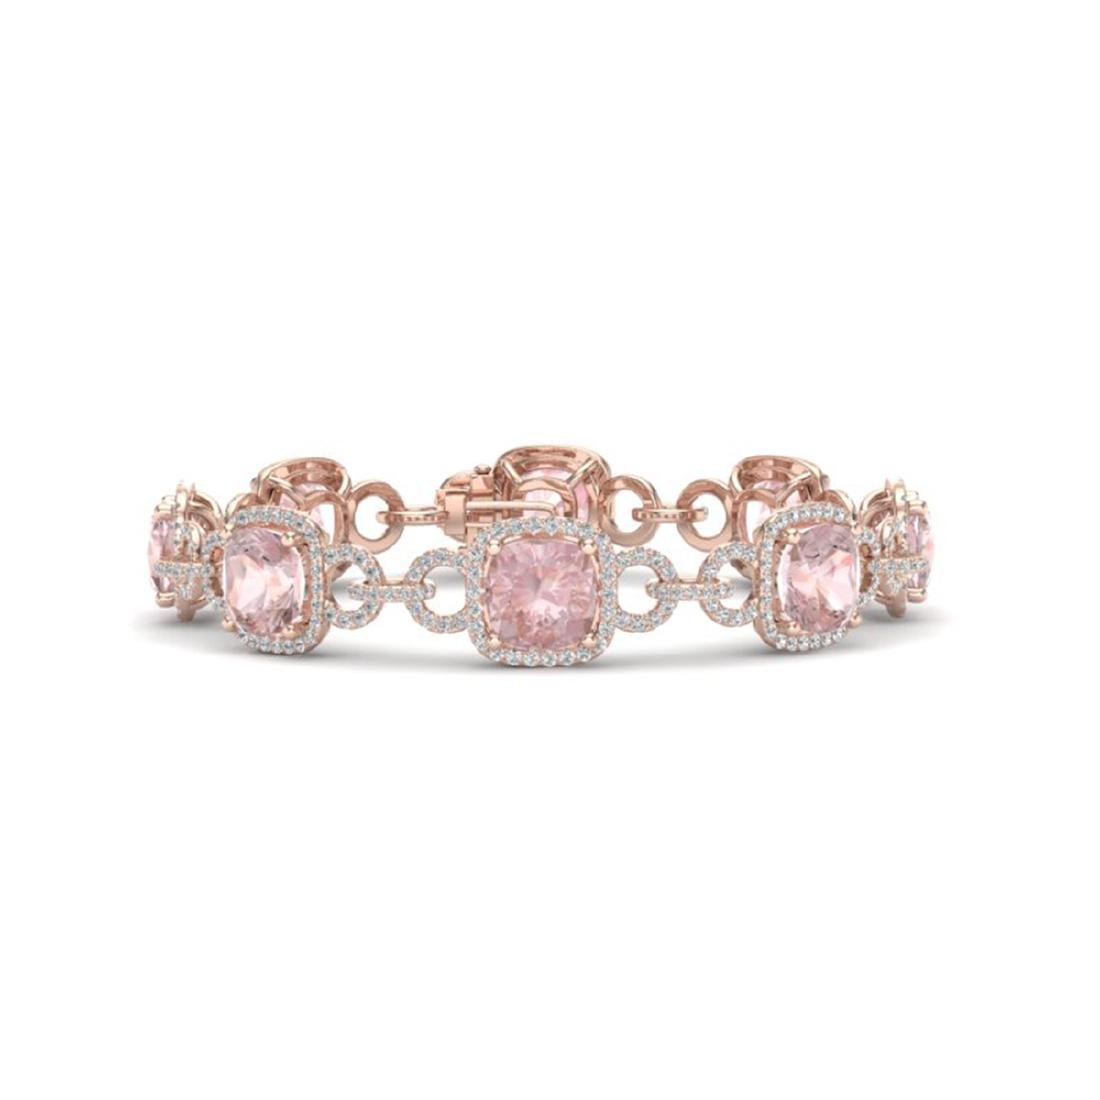 22 CTW Morganite & VS/SI Diamond Bracelet 14K Rose Gold